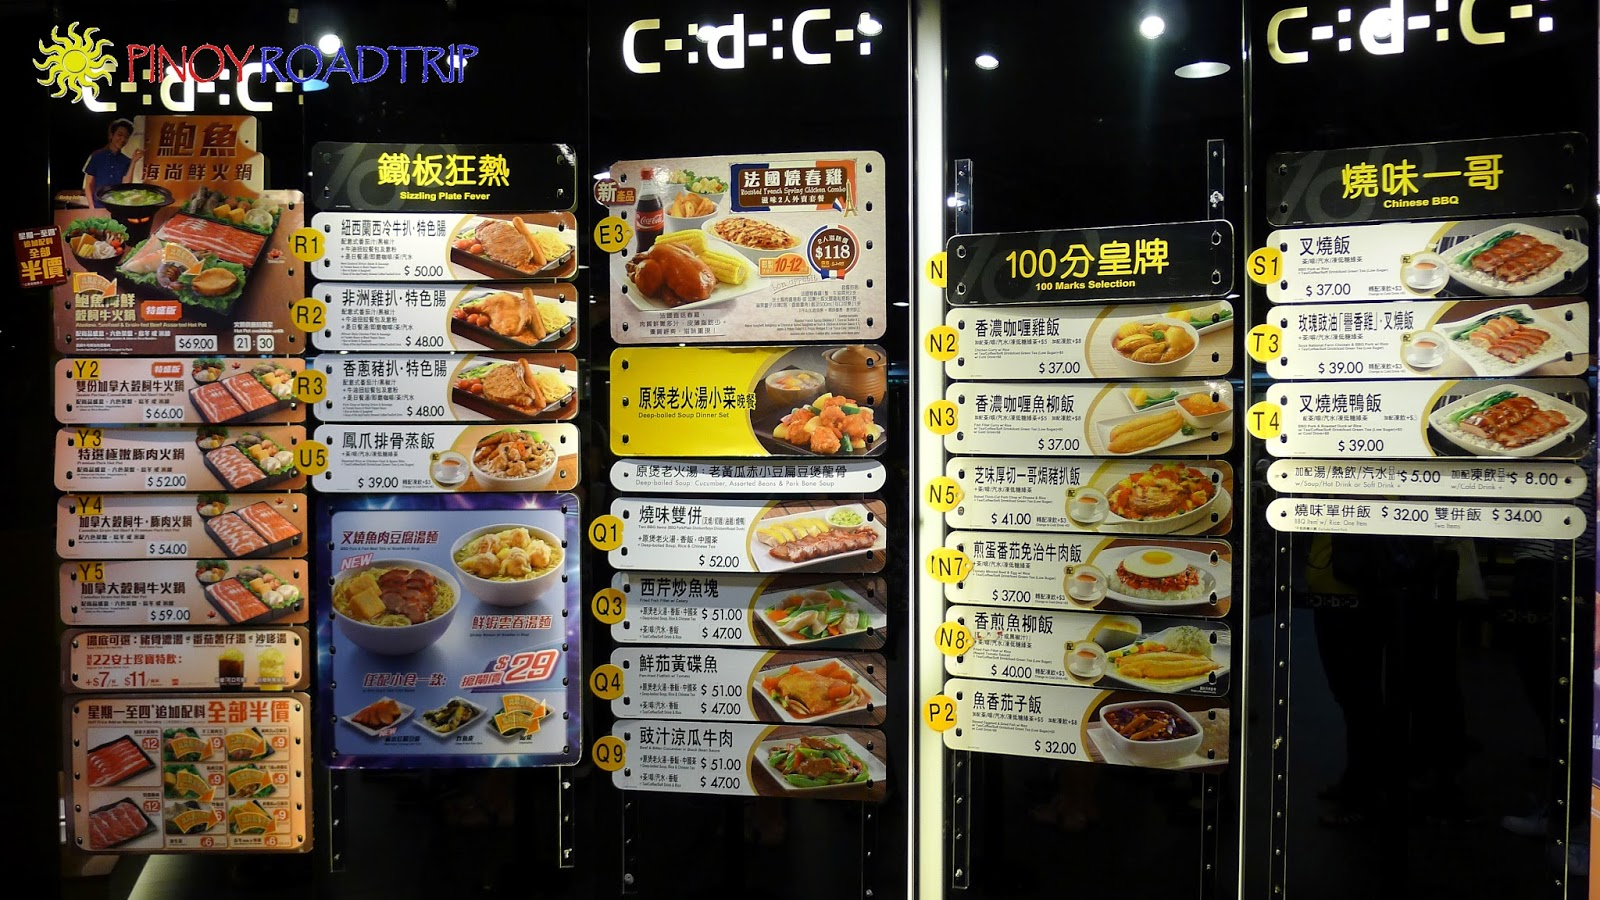 cafe de coral five forces The organizational chart of cafe de coral displays its 15 main executives including tak shing lo, hung chun lim and bin yang.